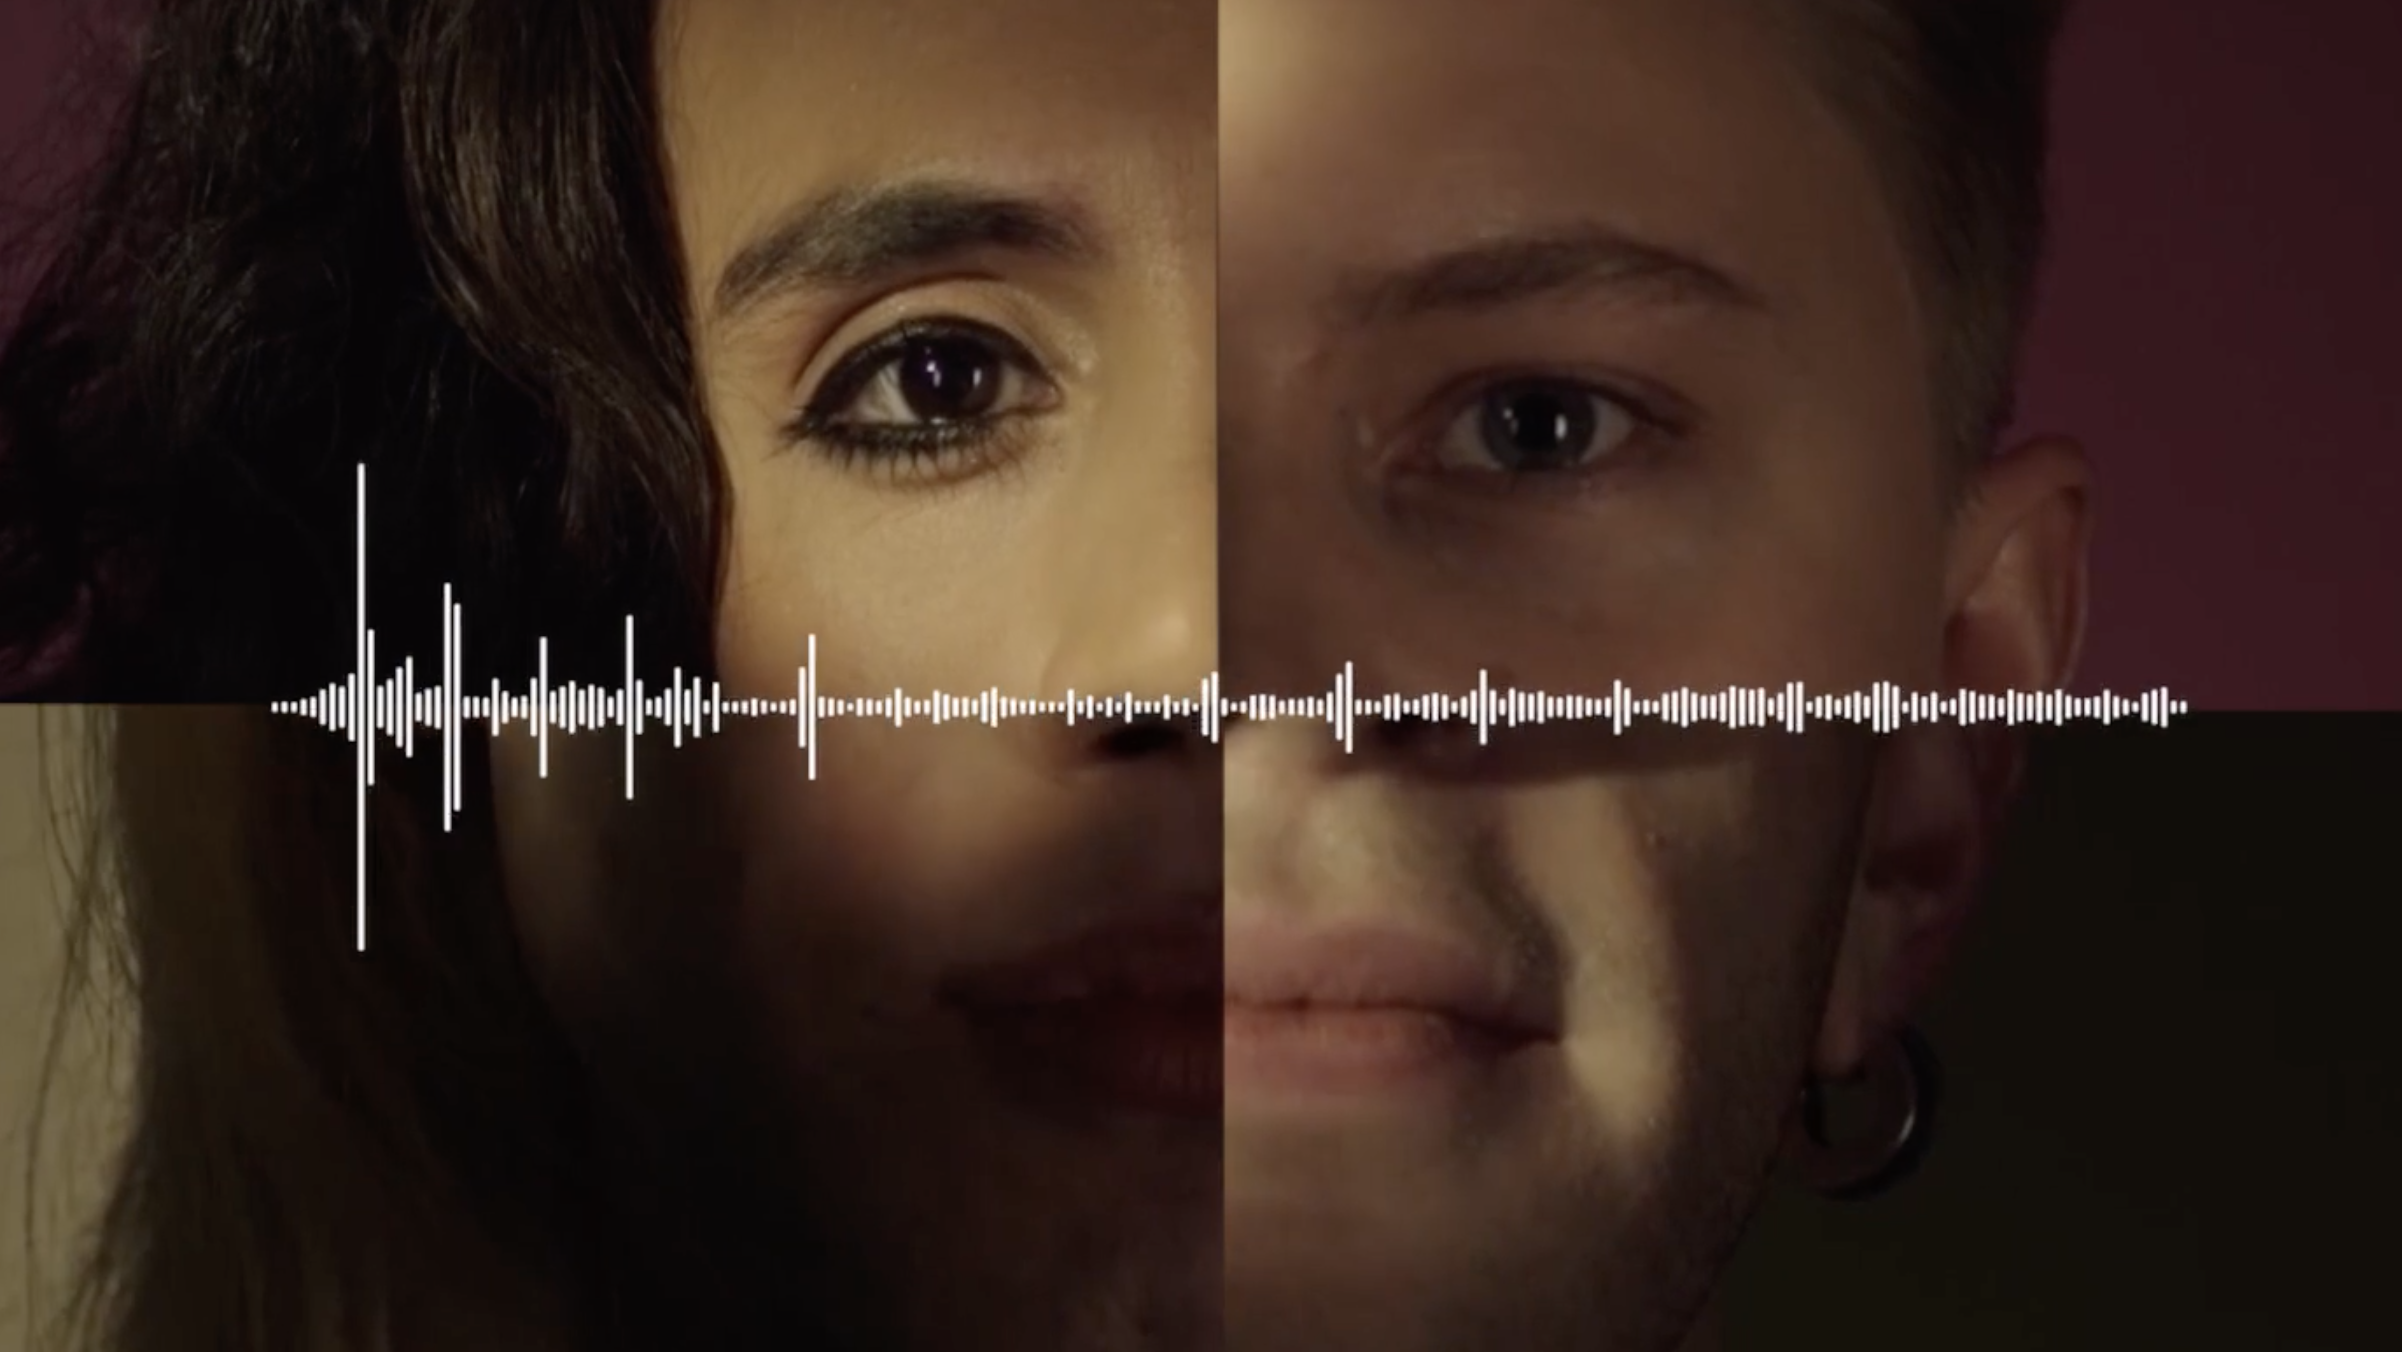 This AI voice is gender-neutral, unlike Siri and Alexa